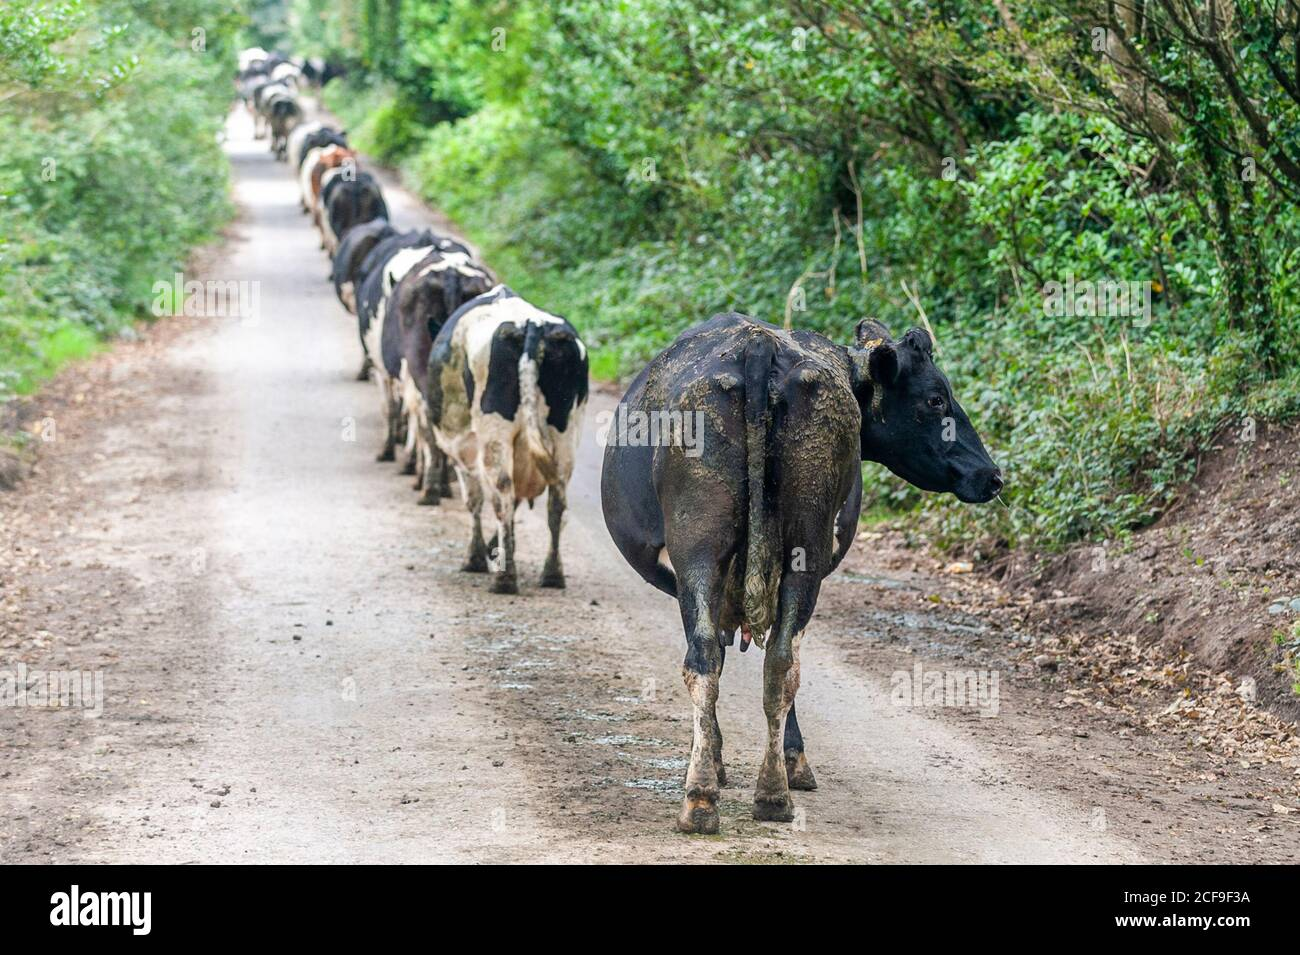 timoleague-west-cork-ireland-4th-sep-2020-west-cork-farmer-kay-deasy-returns-her-dairy-herd-of-70-cows-to-the-fields-after-milking-on-her-farm-in-timoleague-the-day-will-be-a-mix-of-sunny-spells-and-scattered-showers-with-top-temperatures-of-14-to-17-degrees-credit-ag-newsalamy-live-news-2CF9F3A.jpg